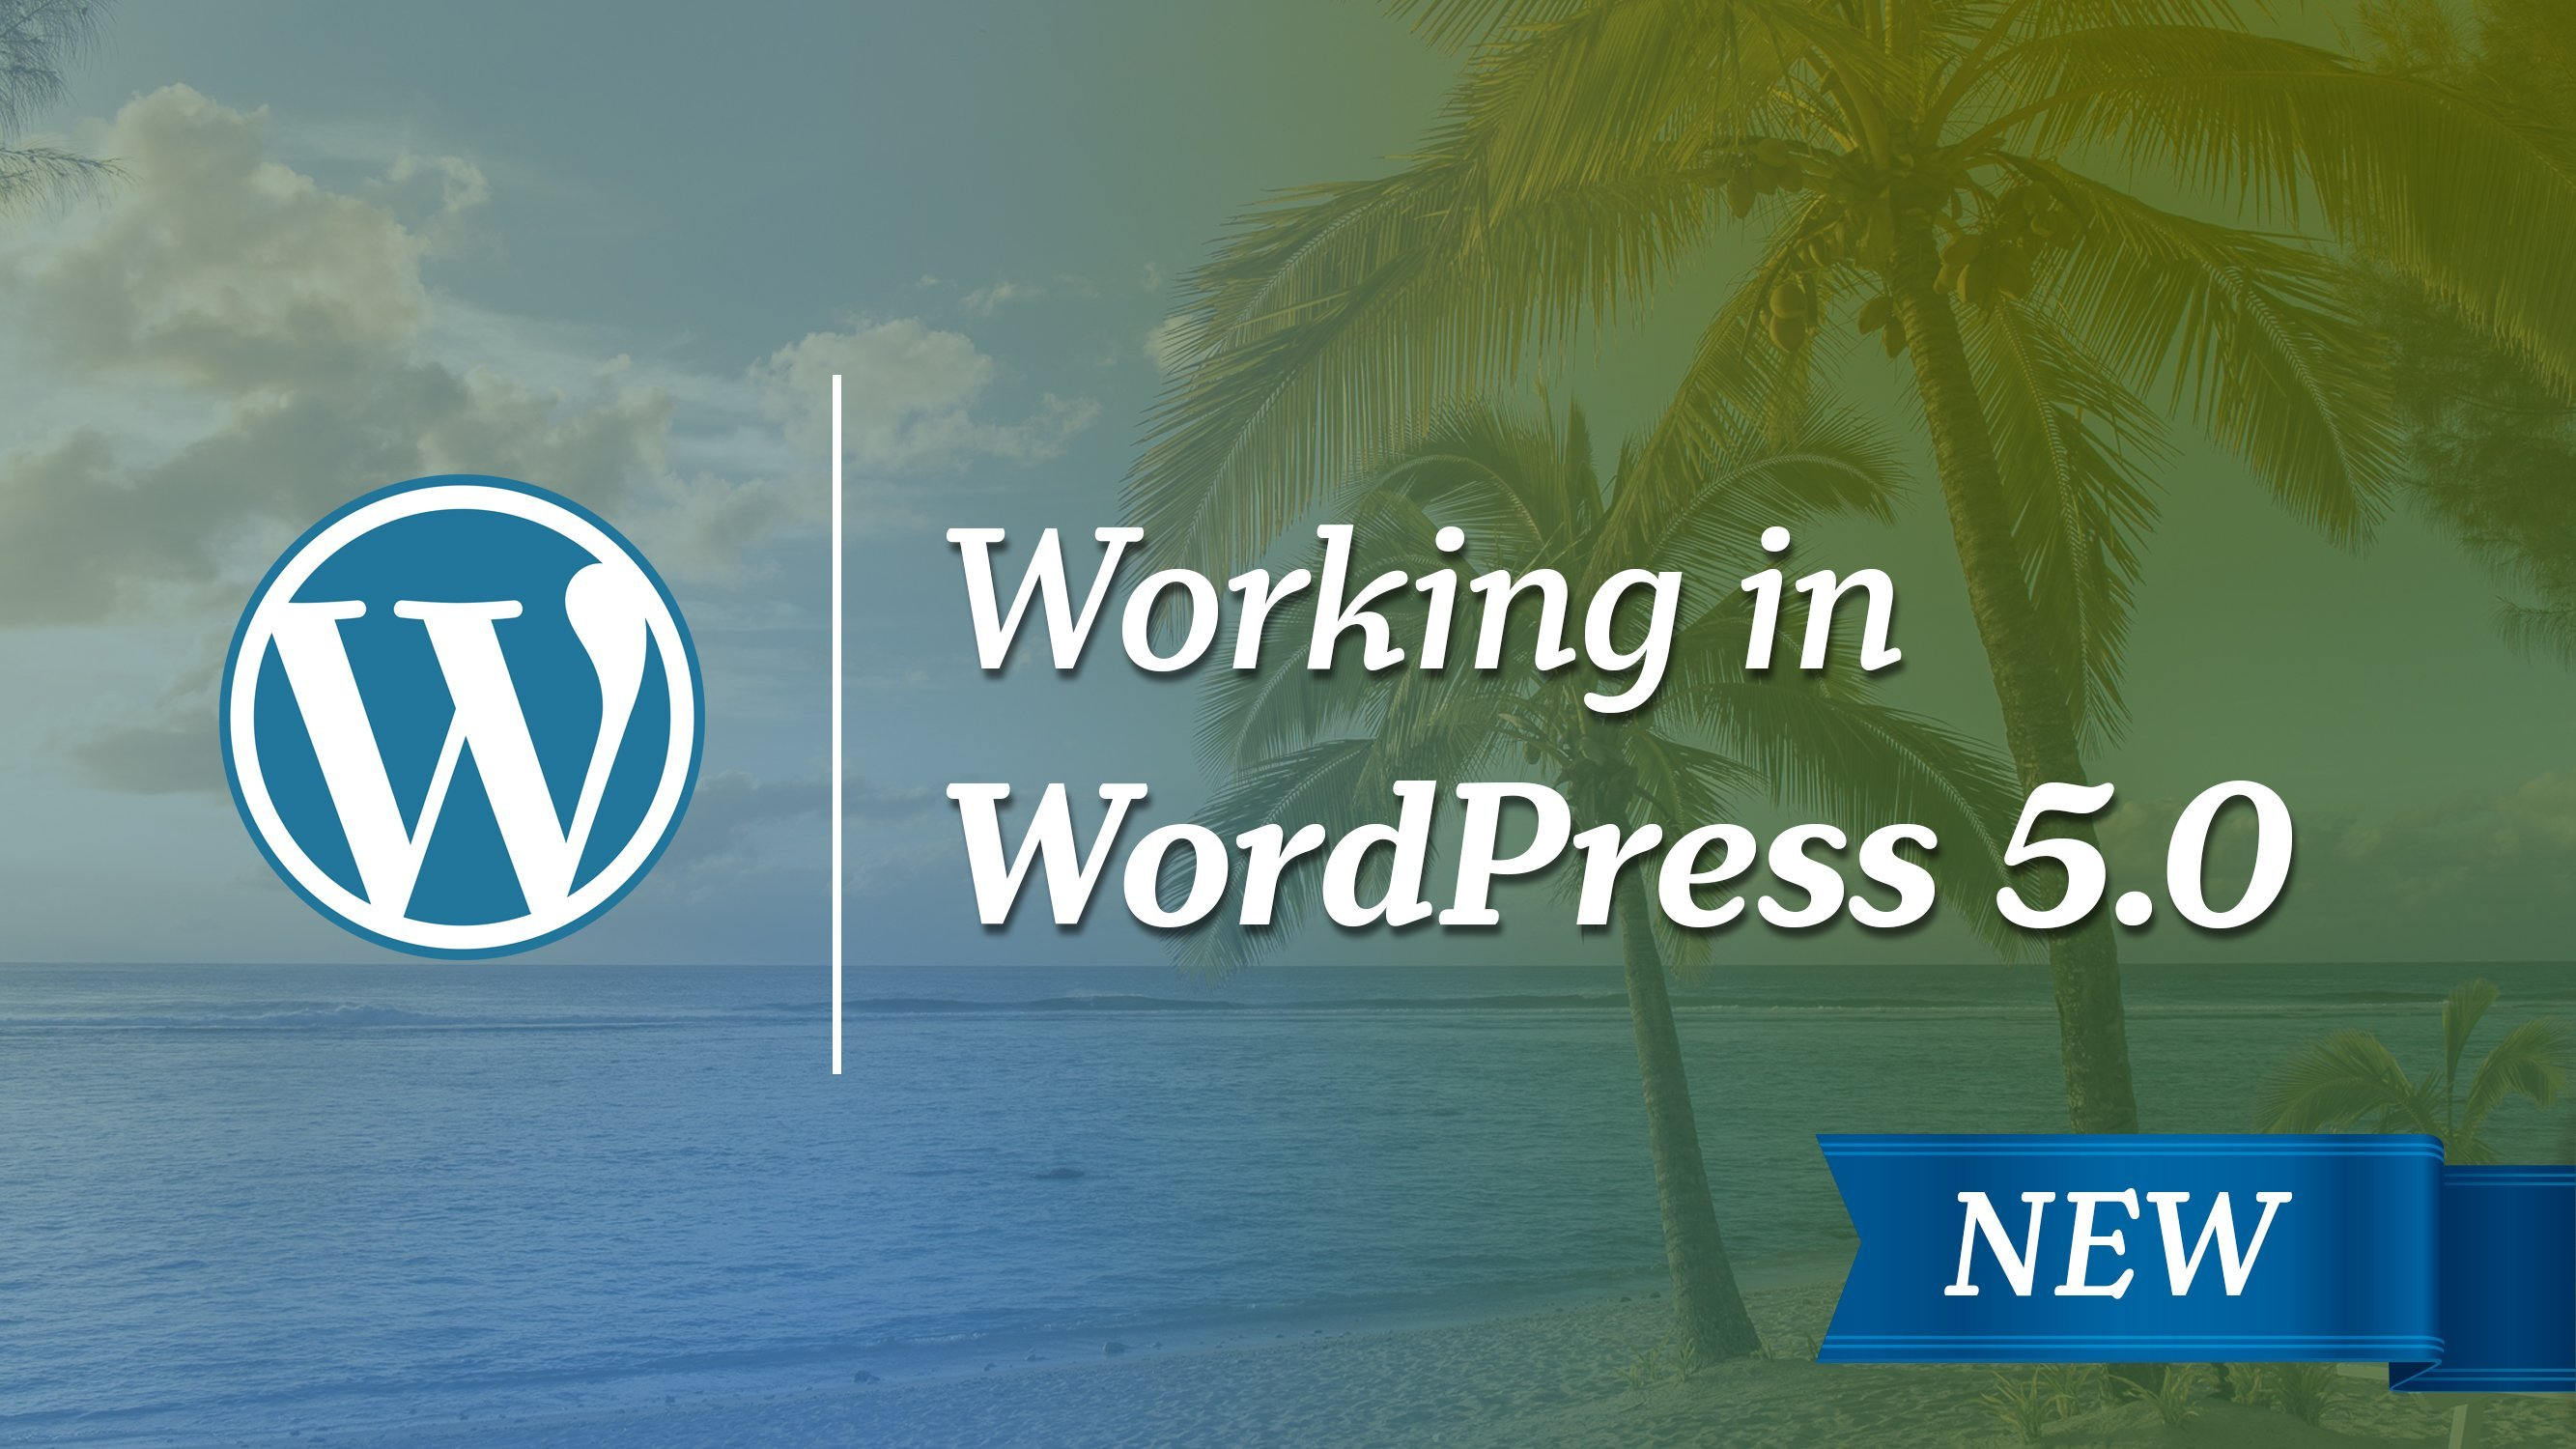 What's New About WordPress 5.0? Everything!